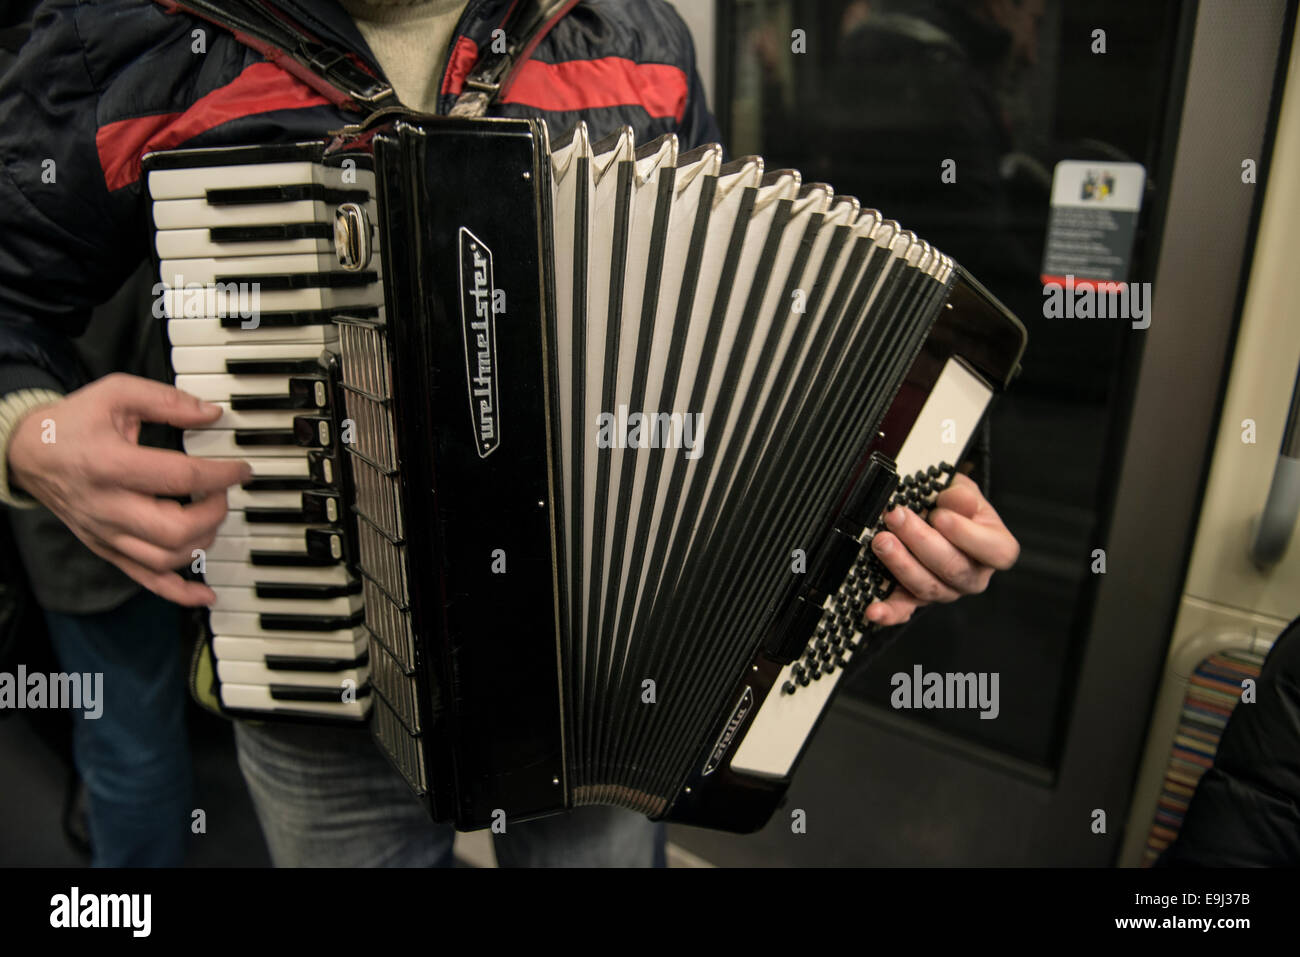 an accordion player busks on the paris metro trains with a traditional wind instrument - Stock Image